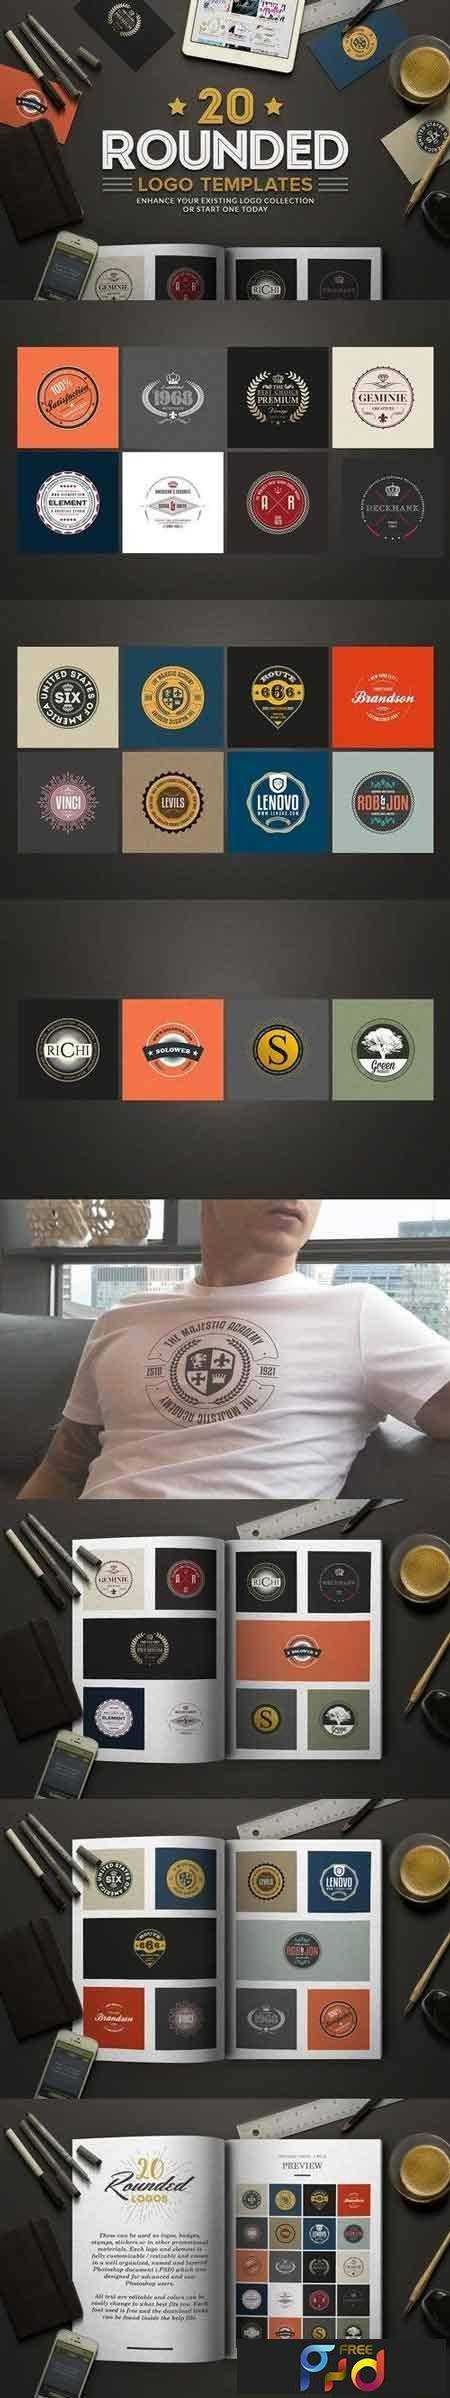 1709194 20 Rounded Logos 2018513 1